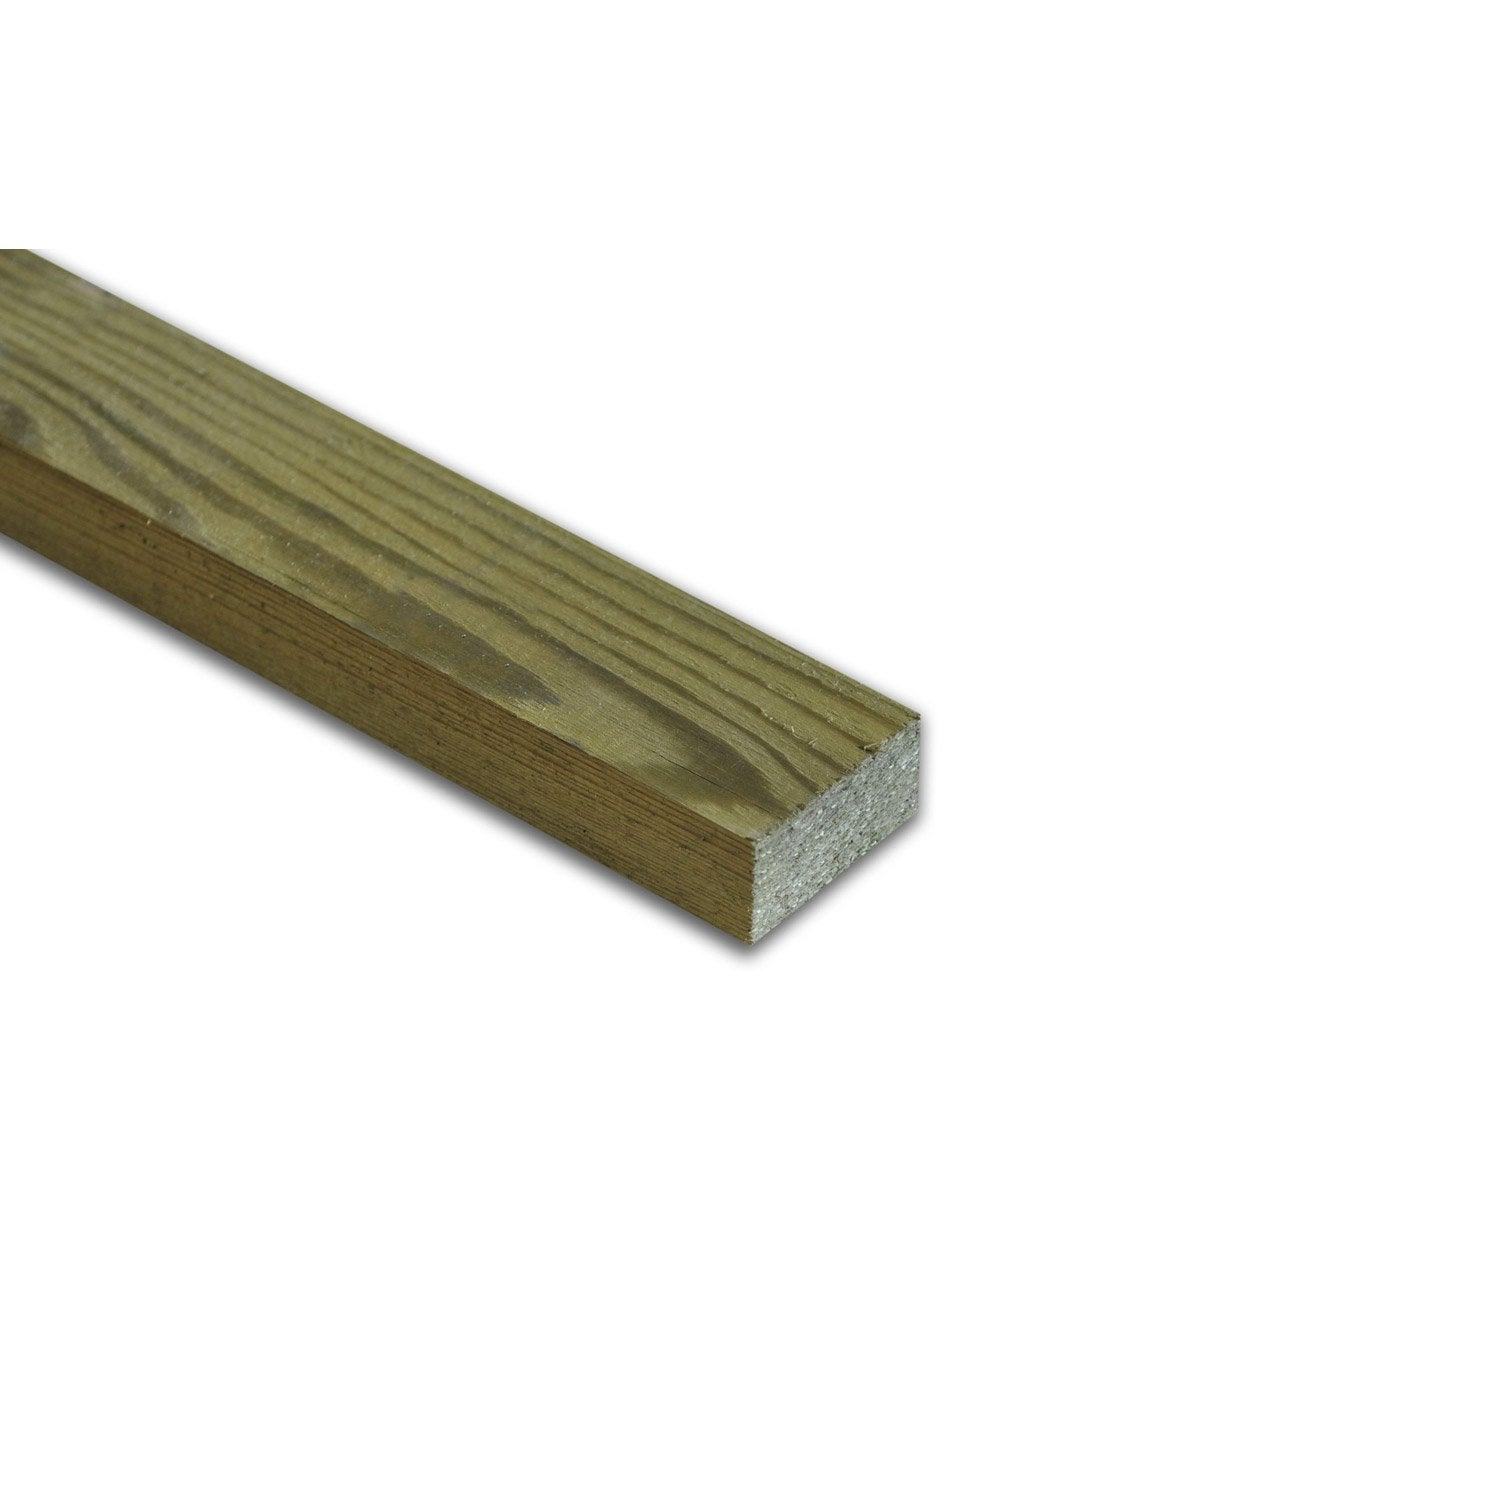 Liteau latte sapin pic a trait 27x40 mm 3 m chx2 leroy merlin - Bois de coffrage leroy merlin ...